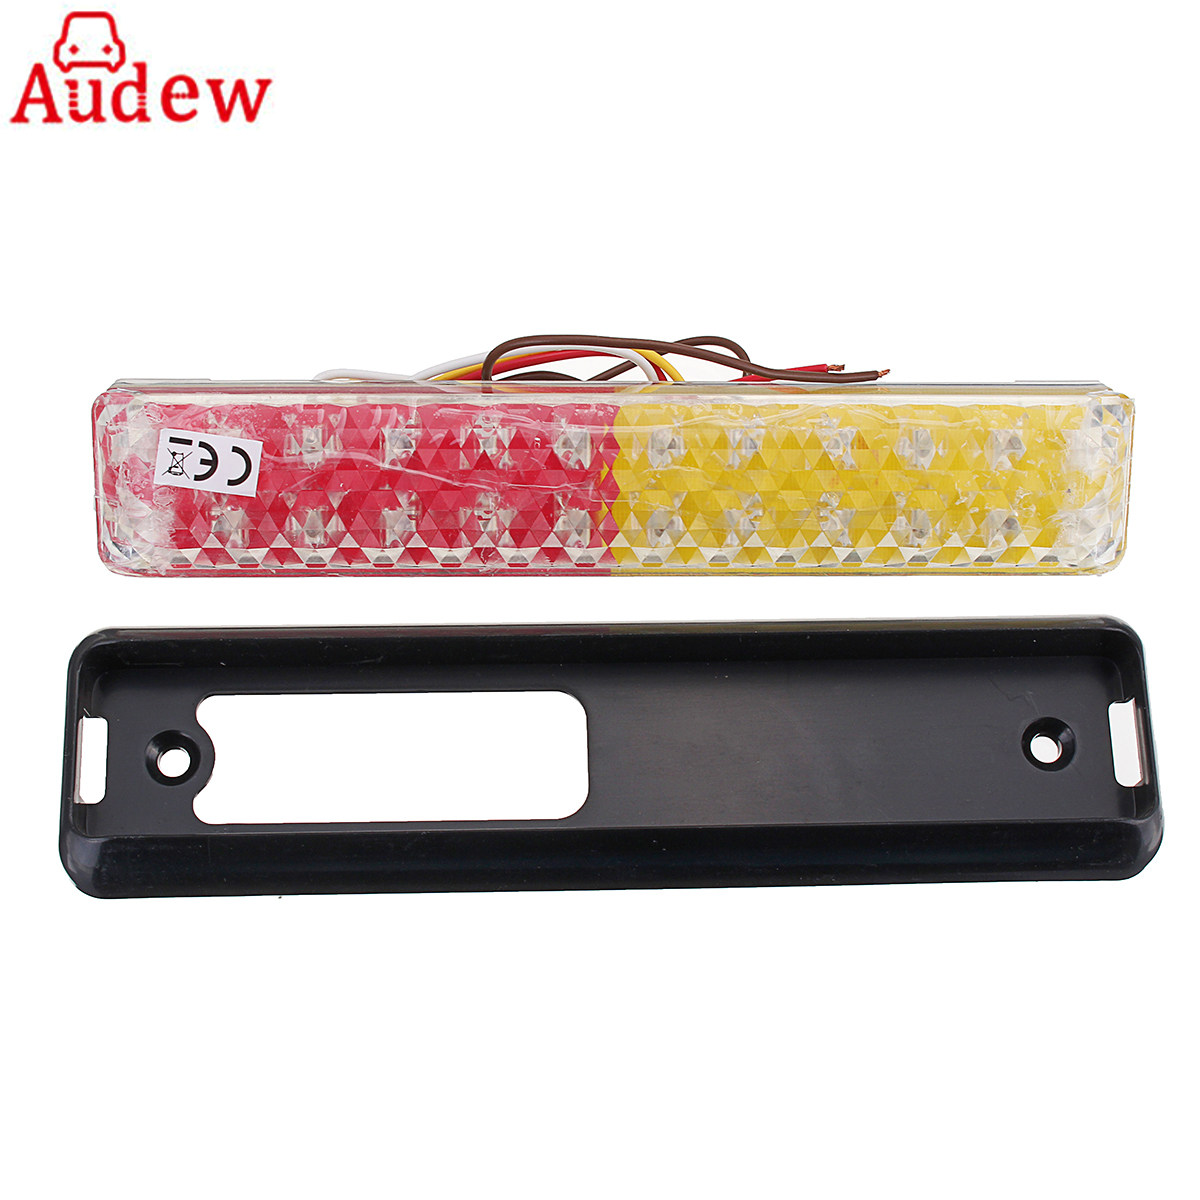 1Pcs 12V-24V LED Car Side Light Tail Lights Ute for Trailer Caravan Truck Boat Stop Reverse Indicator